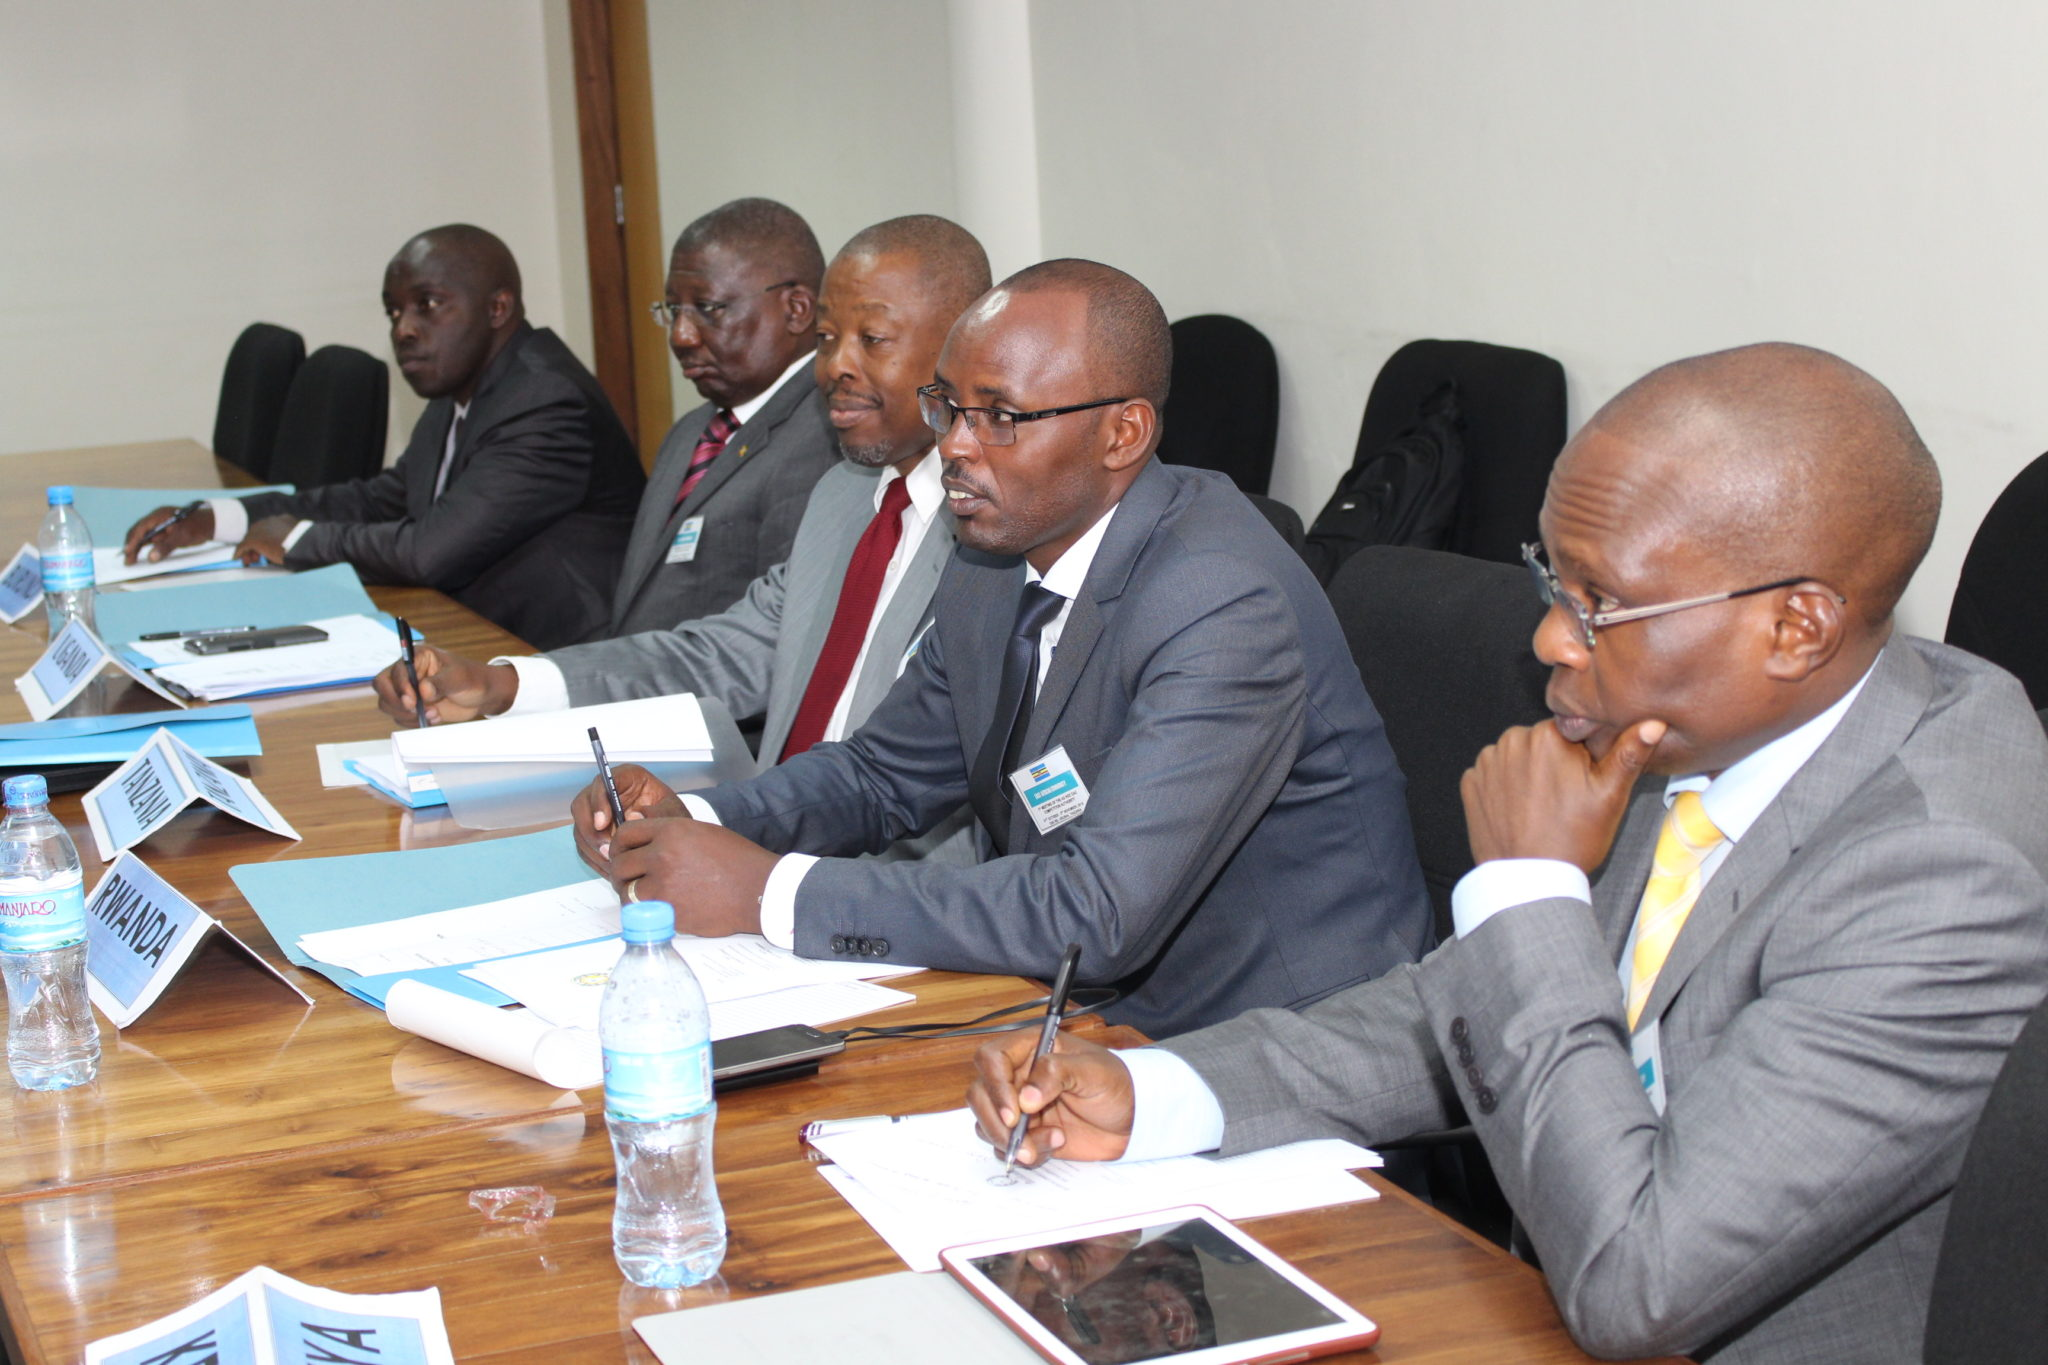 The five newly sworn in Commissioners of the EAC Competition Authority (L-R), Innocent Habarugira (Burundi), Mr. Sam Watasa (Uganda), Dr. Frederick Ringo (Tanzania), Dr. Didas Kayihura (Rwanda) and Francis Kariuki (Kenya), at the Commission's inaugural meeting held at the EAC Headquarters.